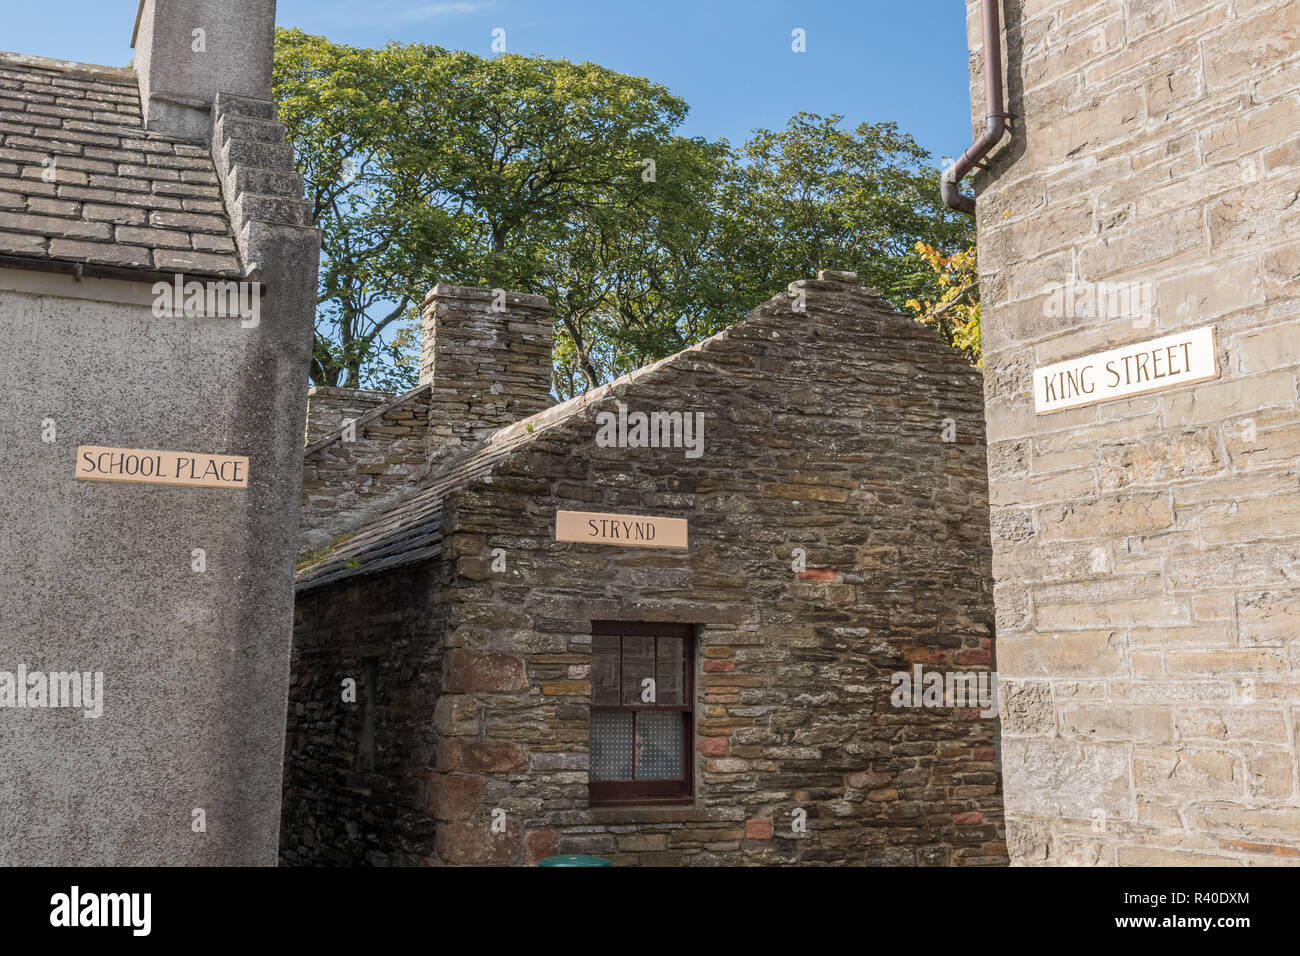 Traditional Street Signs in Kirkwall Conservation Area, Orkney, Scotland, UK - Stock Image